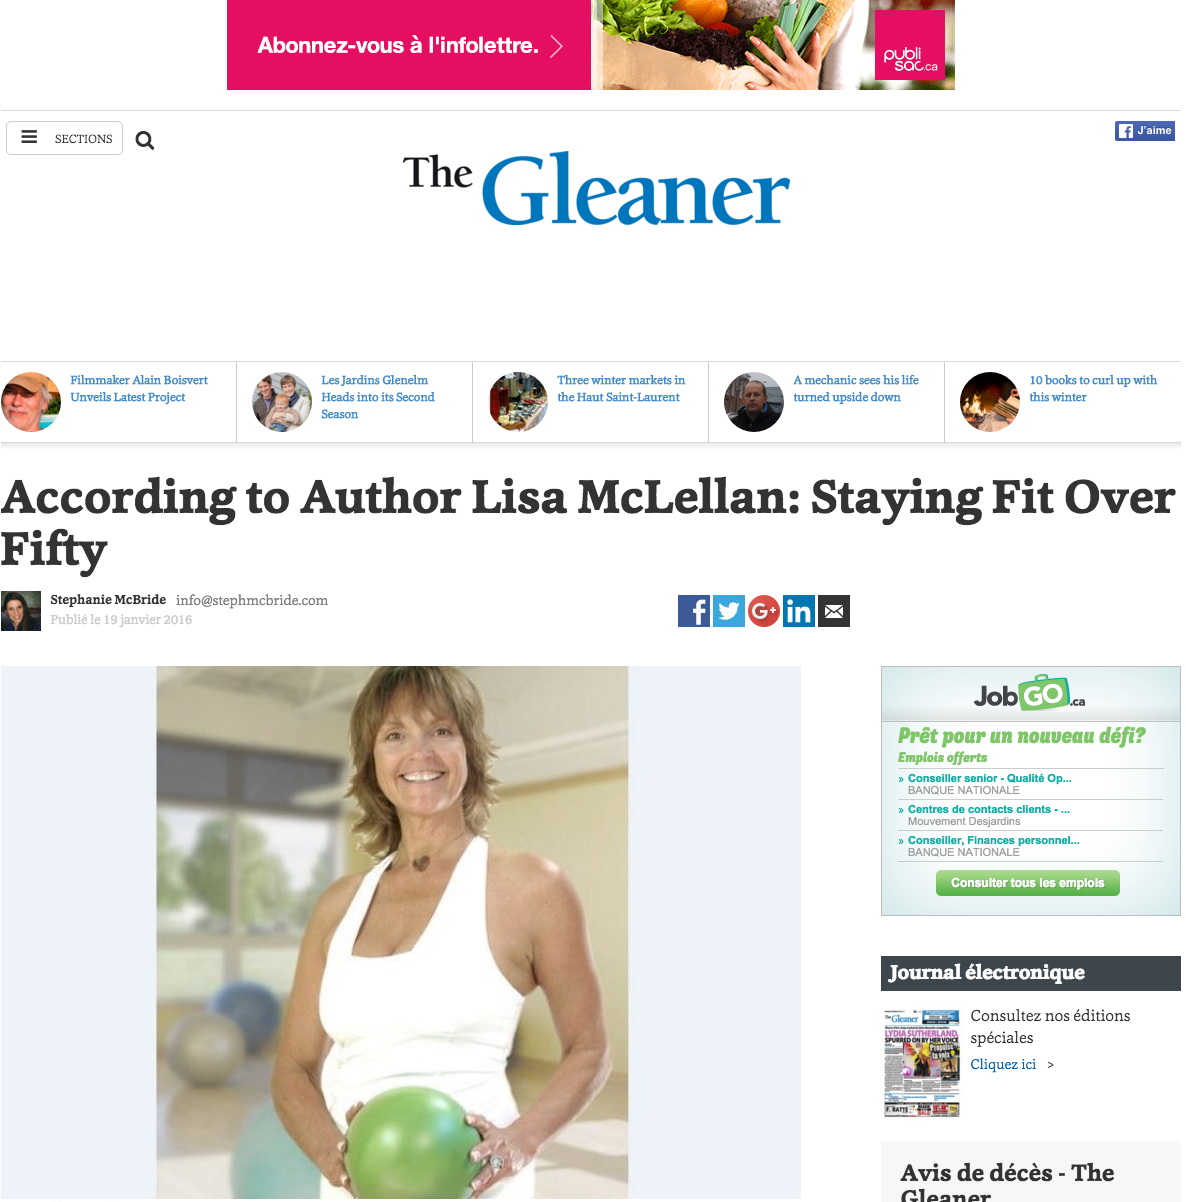 Staying Fit Over Fifty - The Gleaner - Lisa McLellan